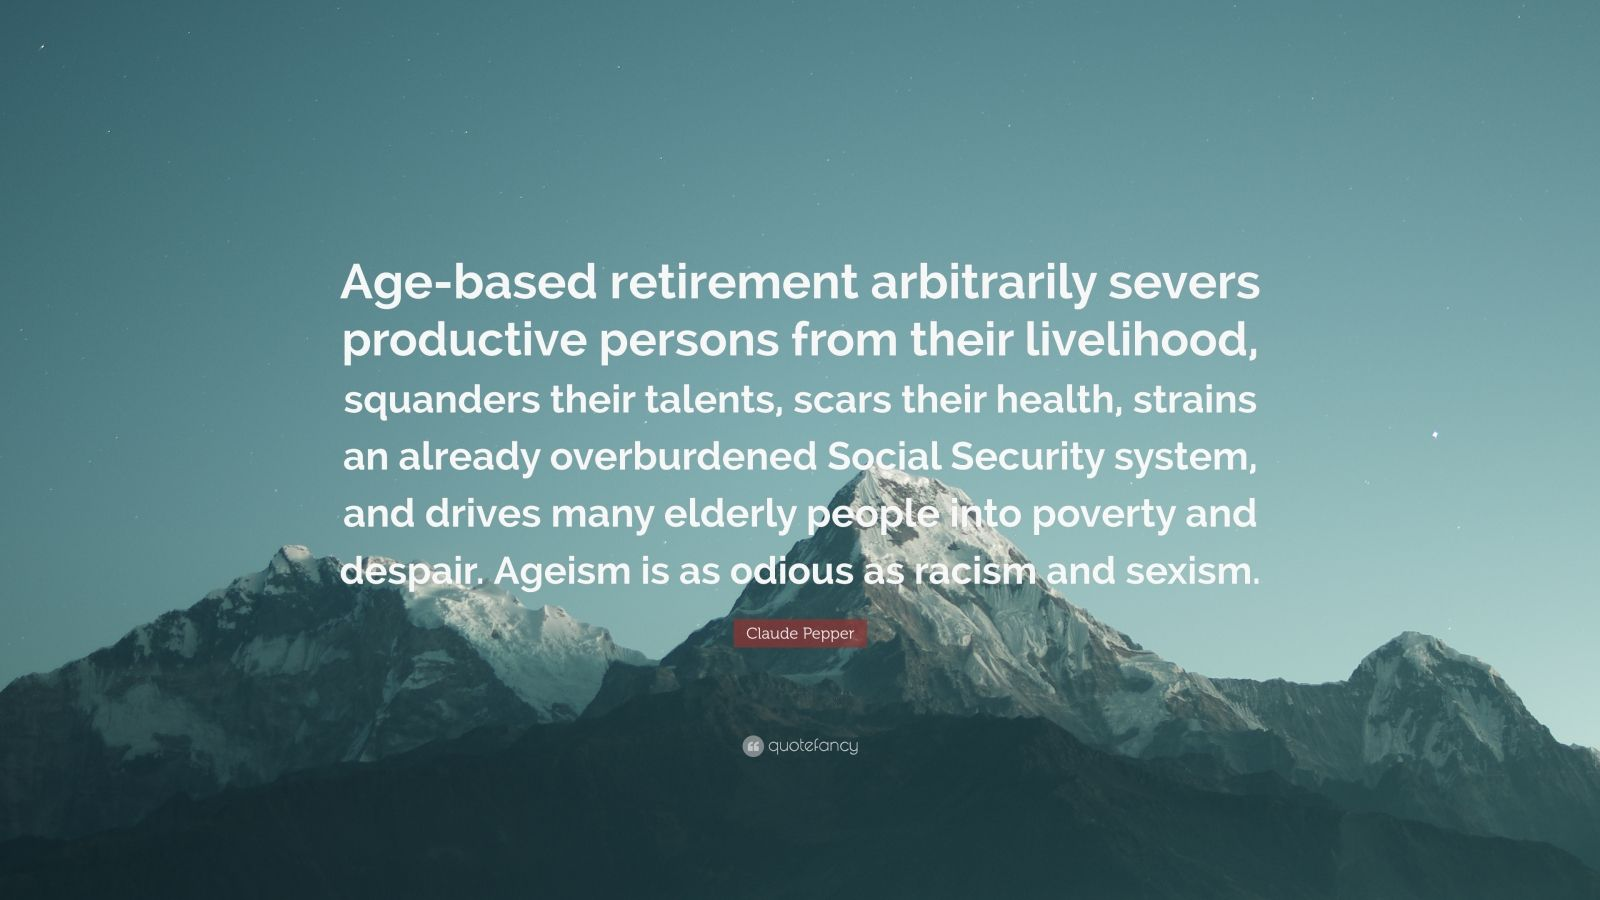 """Claude Pepper Quote: """"Age-based retirement arbitrarily severs productive persons from their livelihood, squanders their talents, scars their health, strains an already overburdened Social Security system, and drives many elderly people into poverty and despair. Ageism is as odious as racism and sexism."""""""